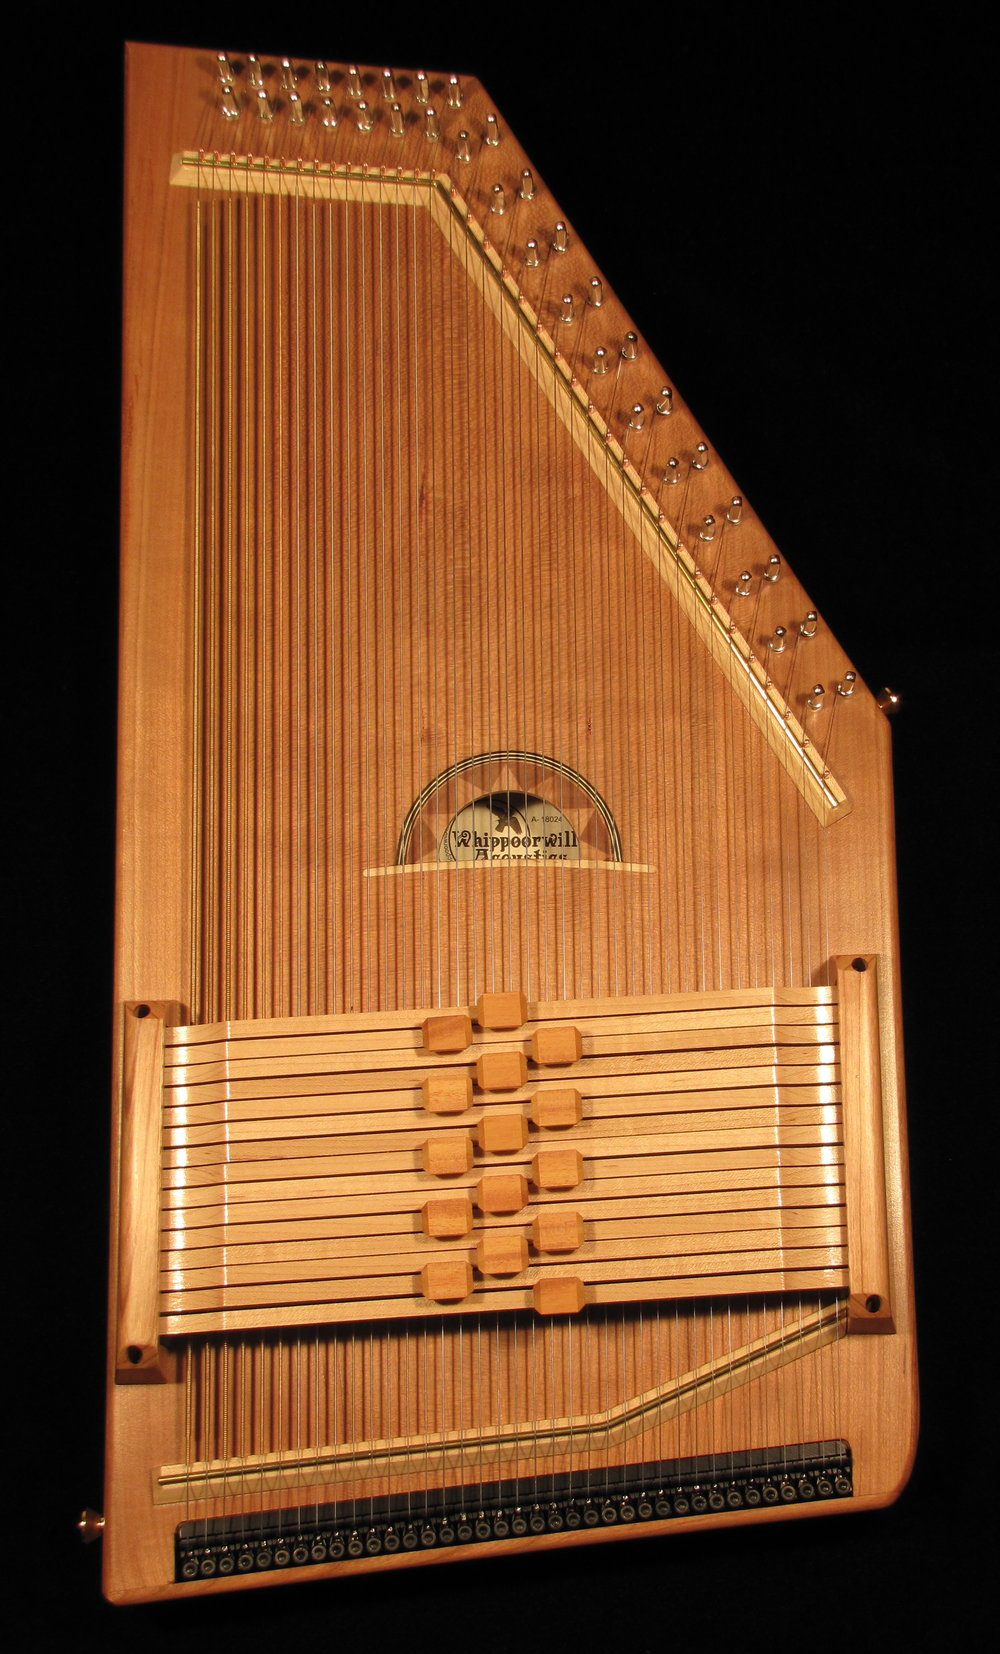 Order your Heartland Autoharp Today!$1600 - Quarter-sawn cherry top and sitka spruce back. Fifteen maple chord bars.Osage Orange chord bar buttons in three rows. Fine tuners.High-quality padded case.Distinctive sunset sound hole design.Endorsed by Jo Ann Smith with autographed label.Incredibly light and comfortable to hold and play.Bright, clear, sweet tone with plenty of volume.Four-key Chromatic, two-key diatonic or single-key diatonic setups.Custom setup consultation with Jo Ann included.Optional: Lock bars ($25 each) magnetic pickup ($200)